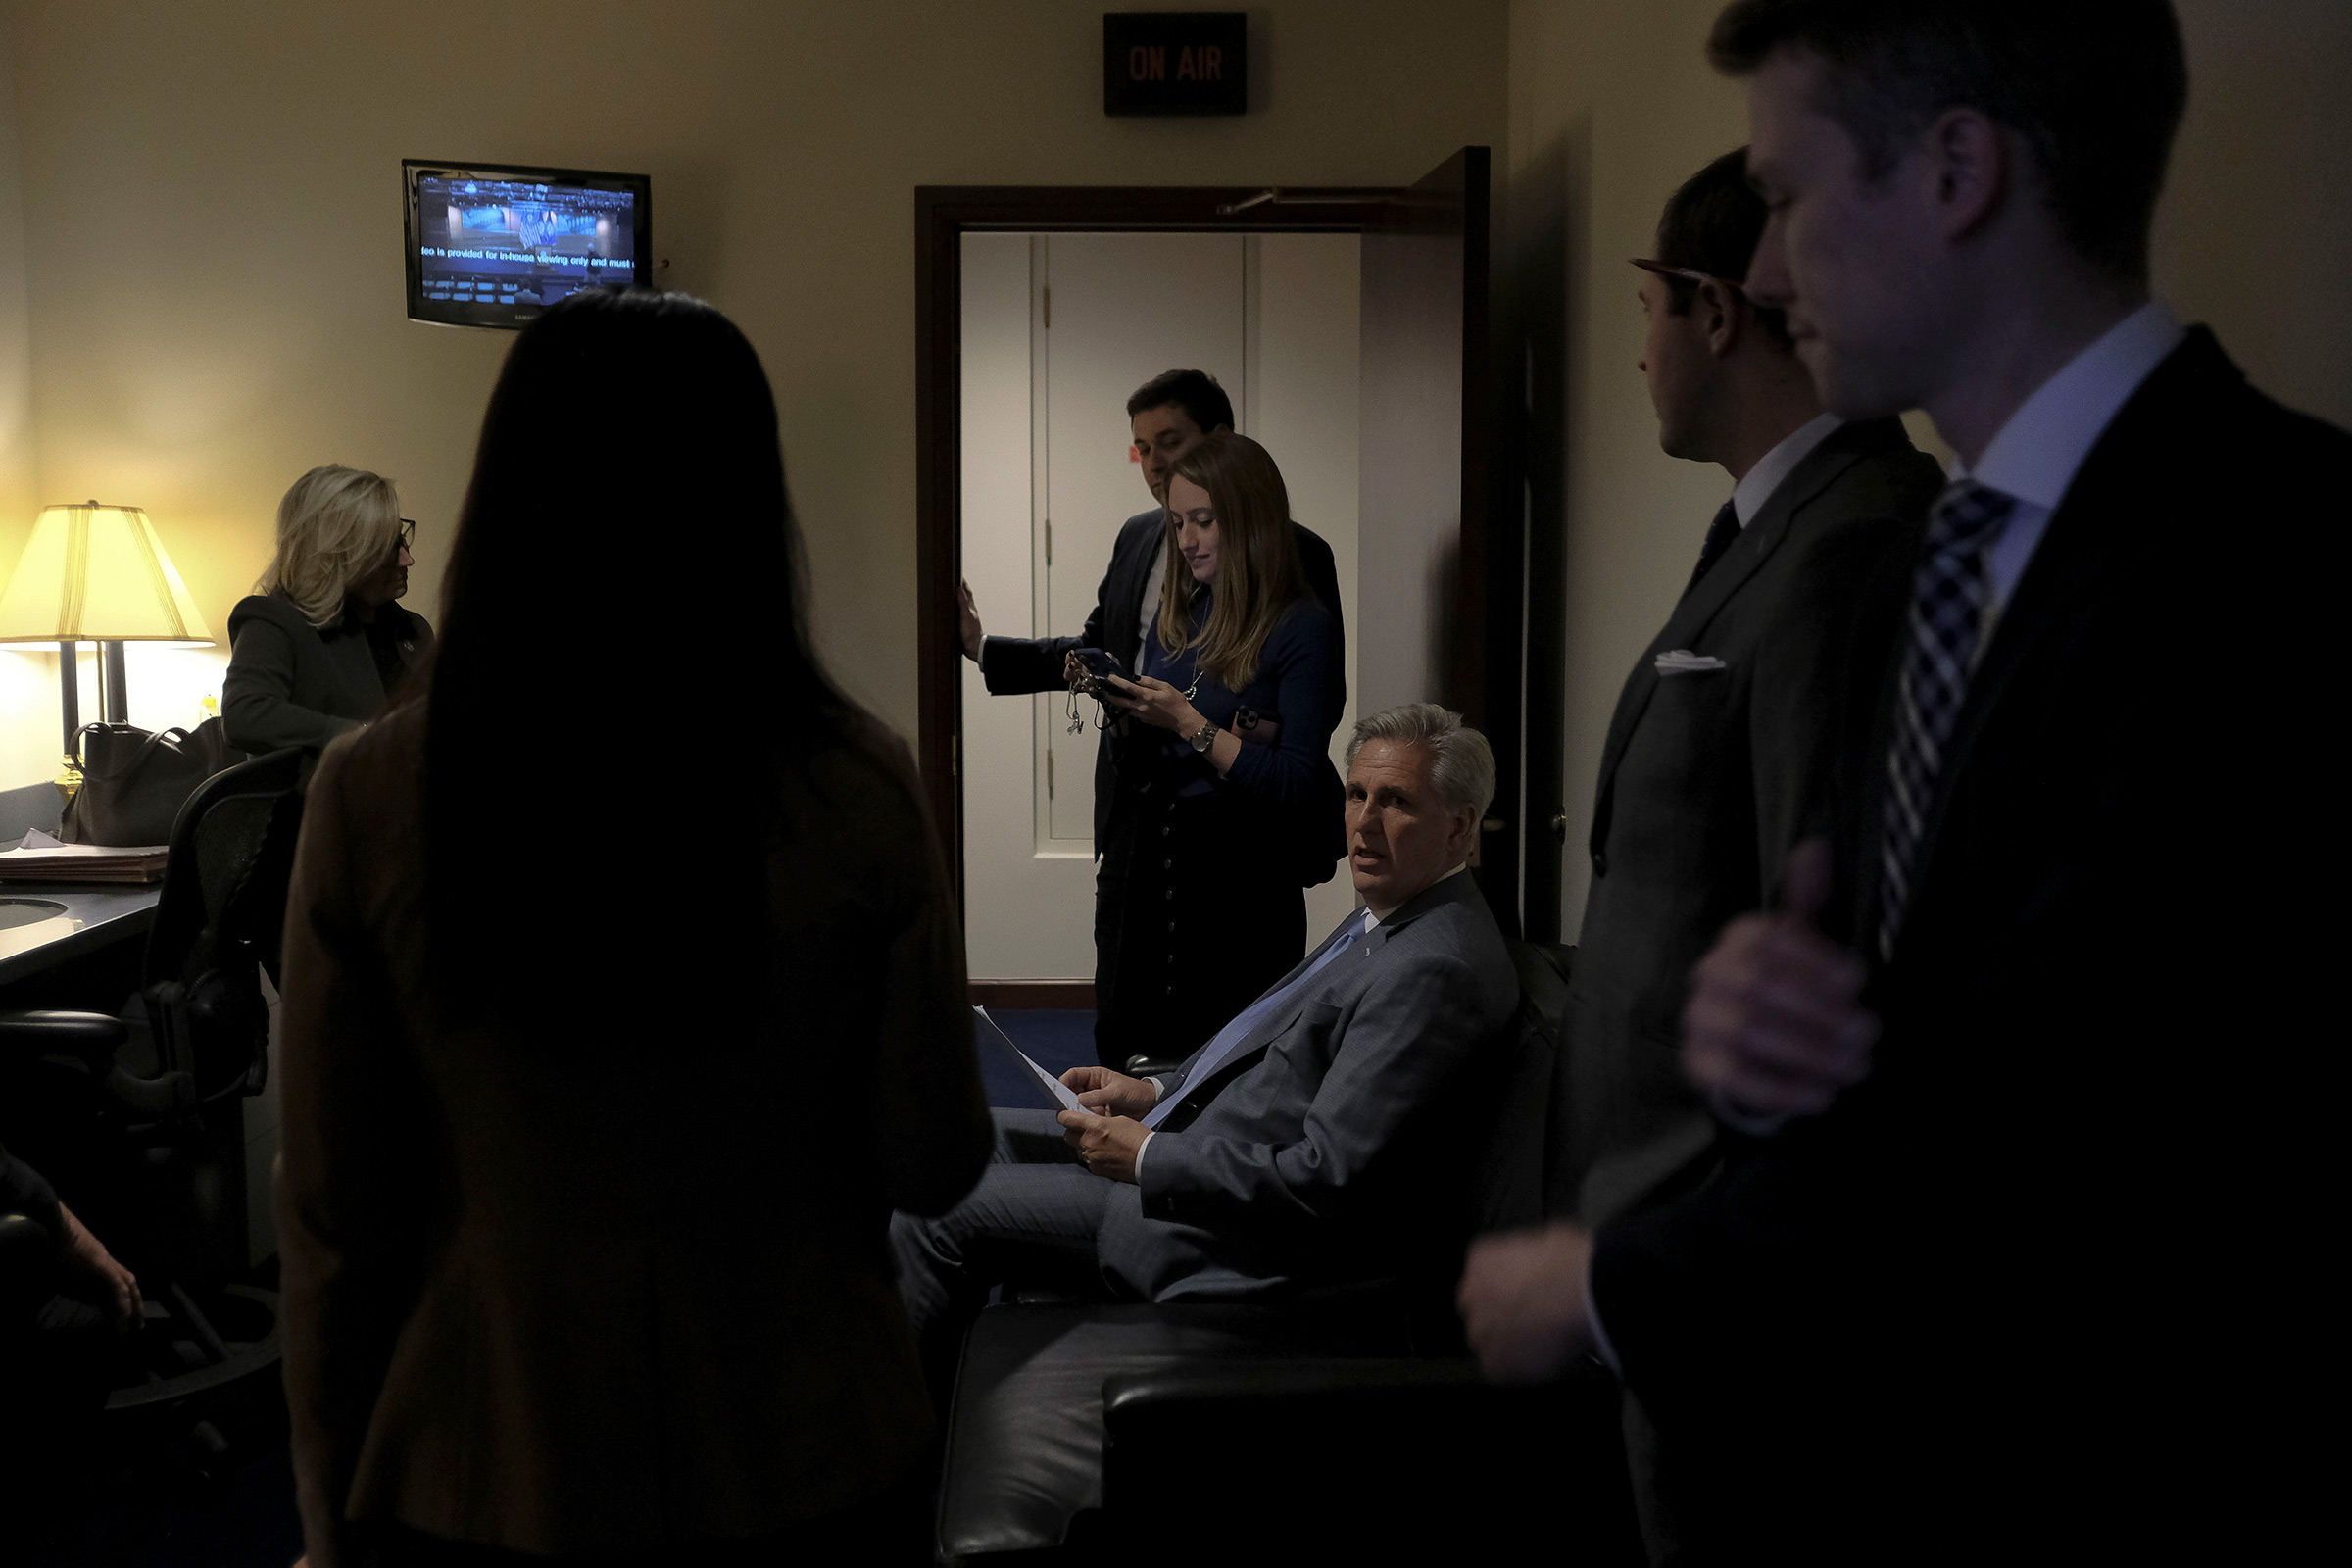 House Minority Leader Kevin McCarthy (R-Calif.) reads over his notes with other GOP leaders before a press conference denouncing the vote on the articles of impeachment at the Capitol in Washington, D.C., on Dec. 17, 2019.